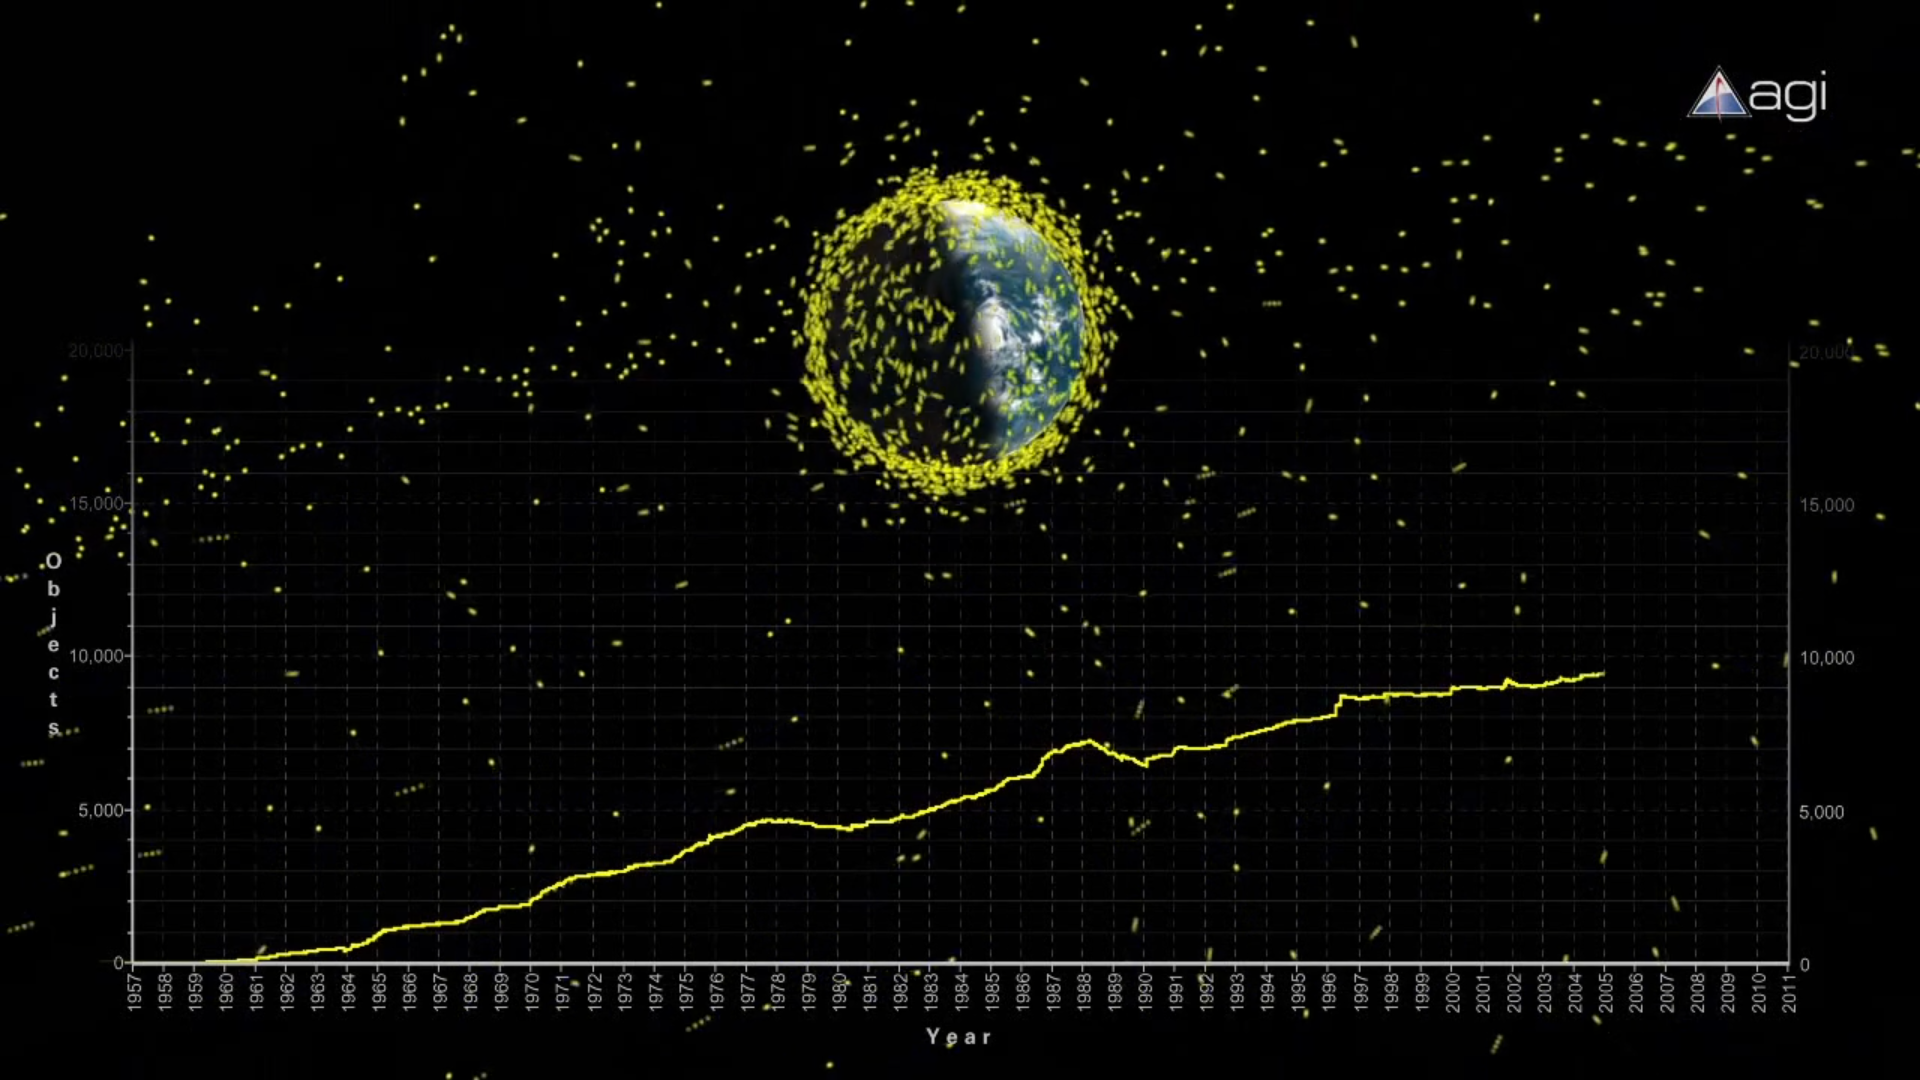 A Plot of the Number of Objects in Orbit Each Year